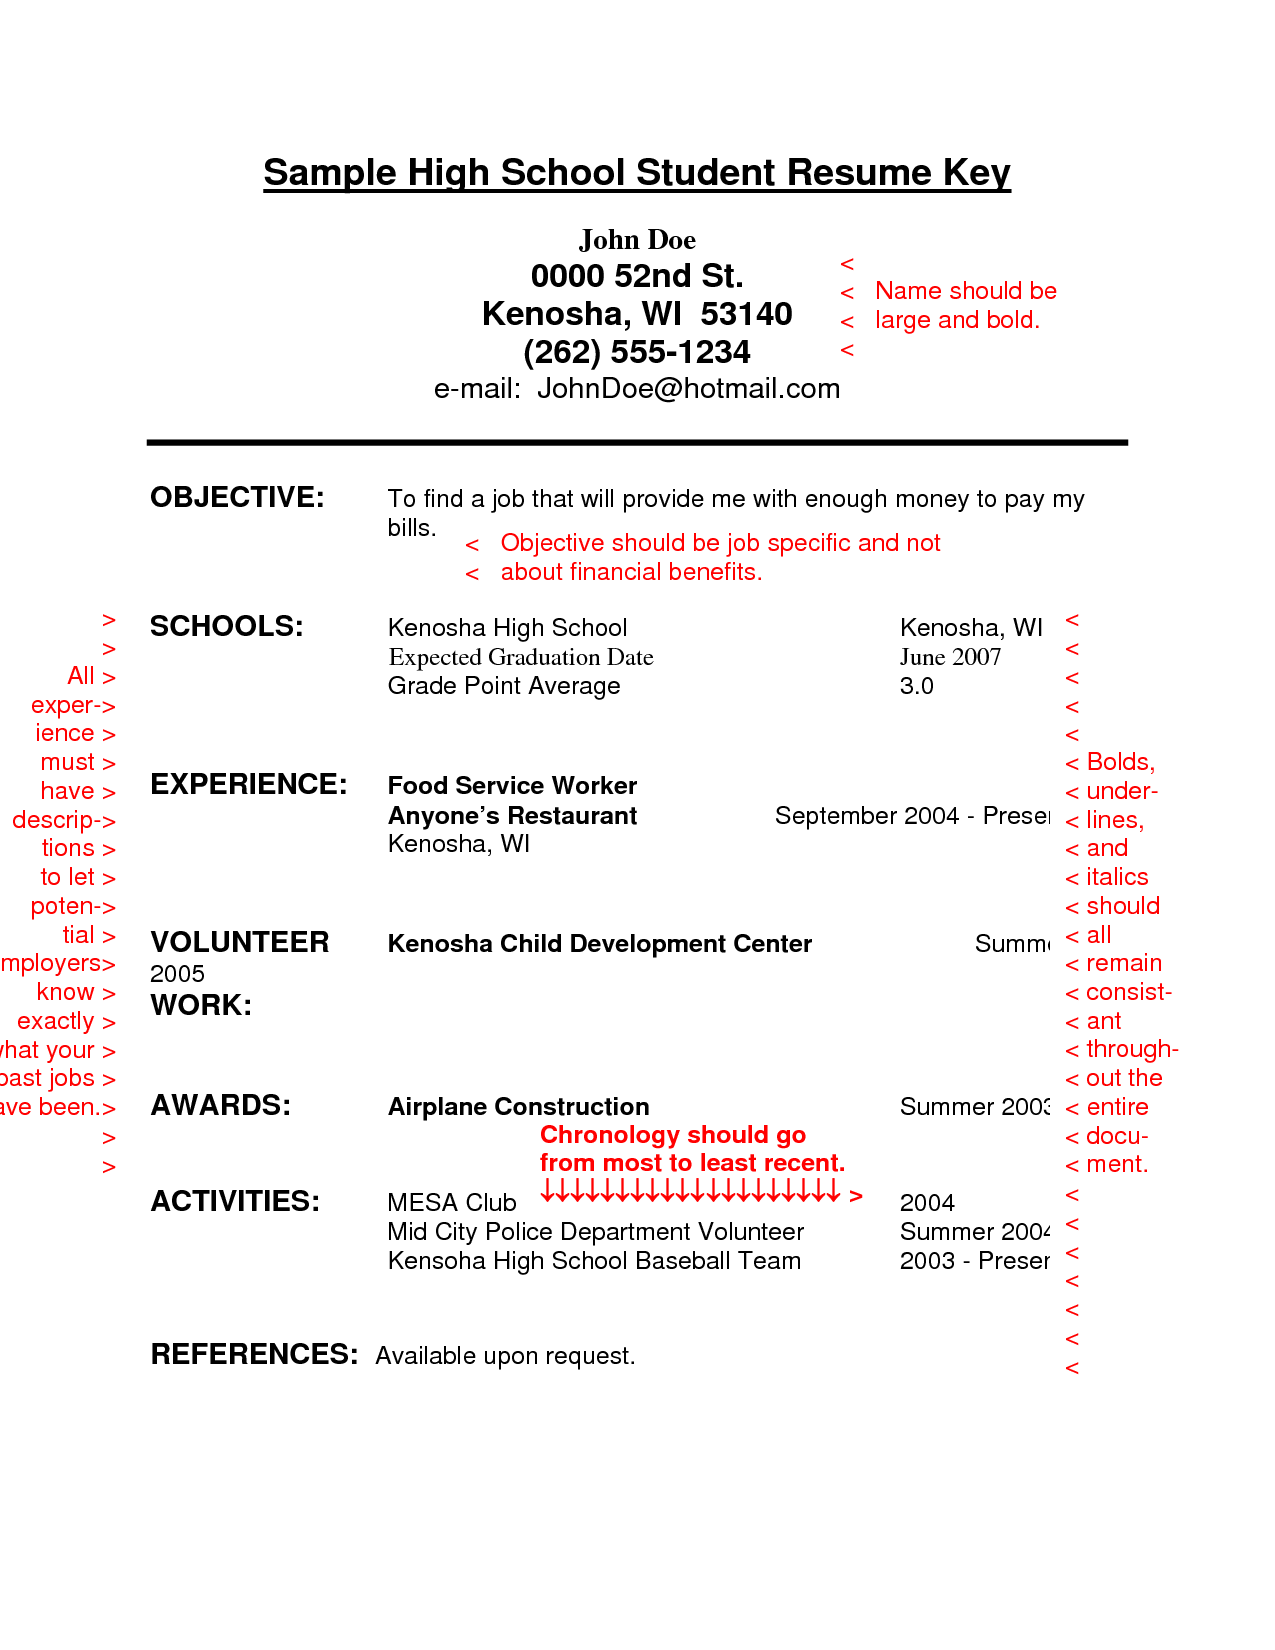 Resume For High School Student With No Work Experience High School Student Resume Example Resume Template Builder